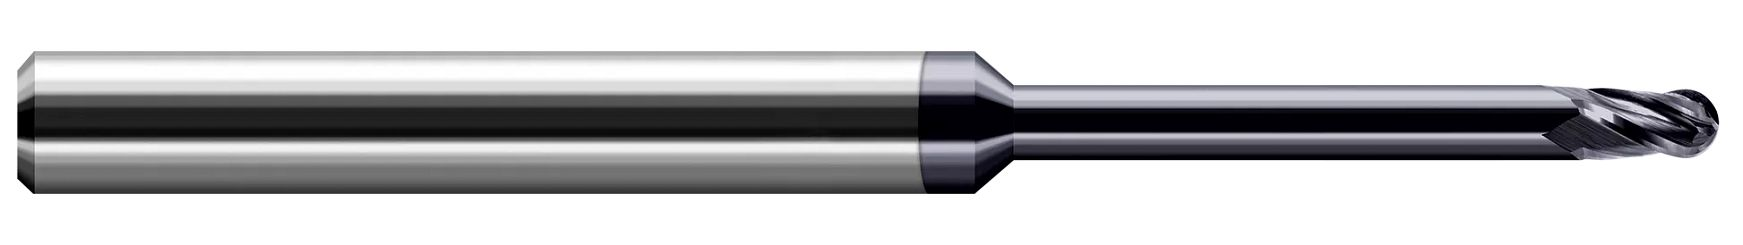 Variable Helix End Mills for High Temp Alloys - Ball - Long Reach, Stub Flute